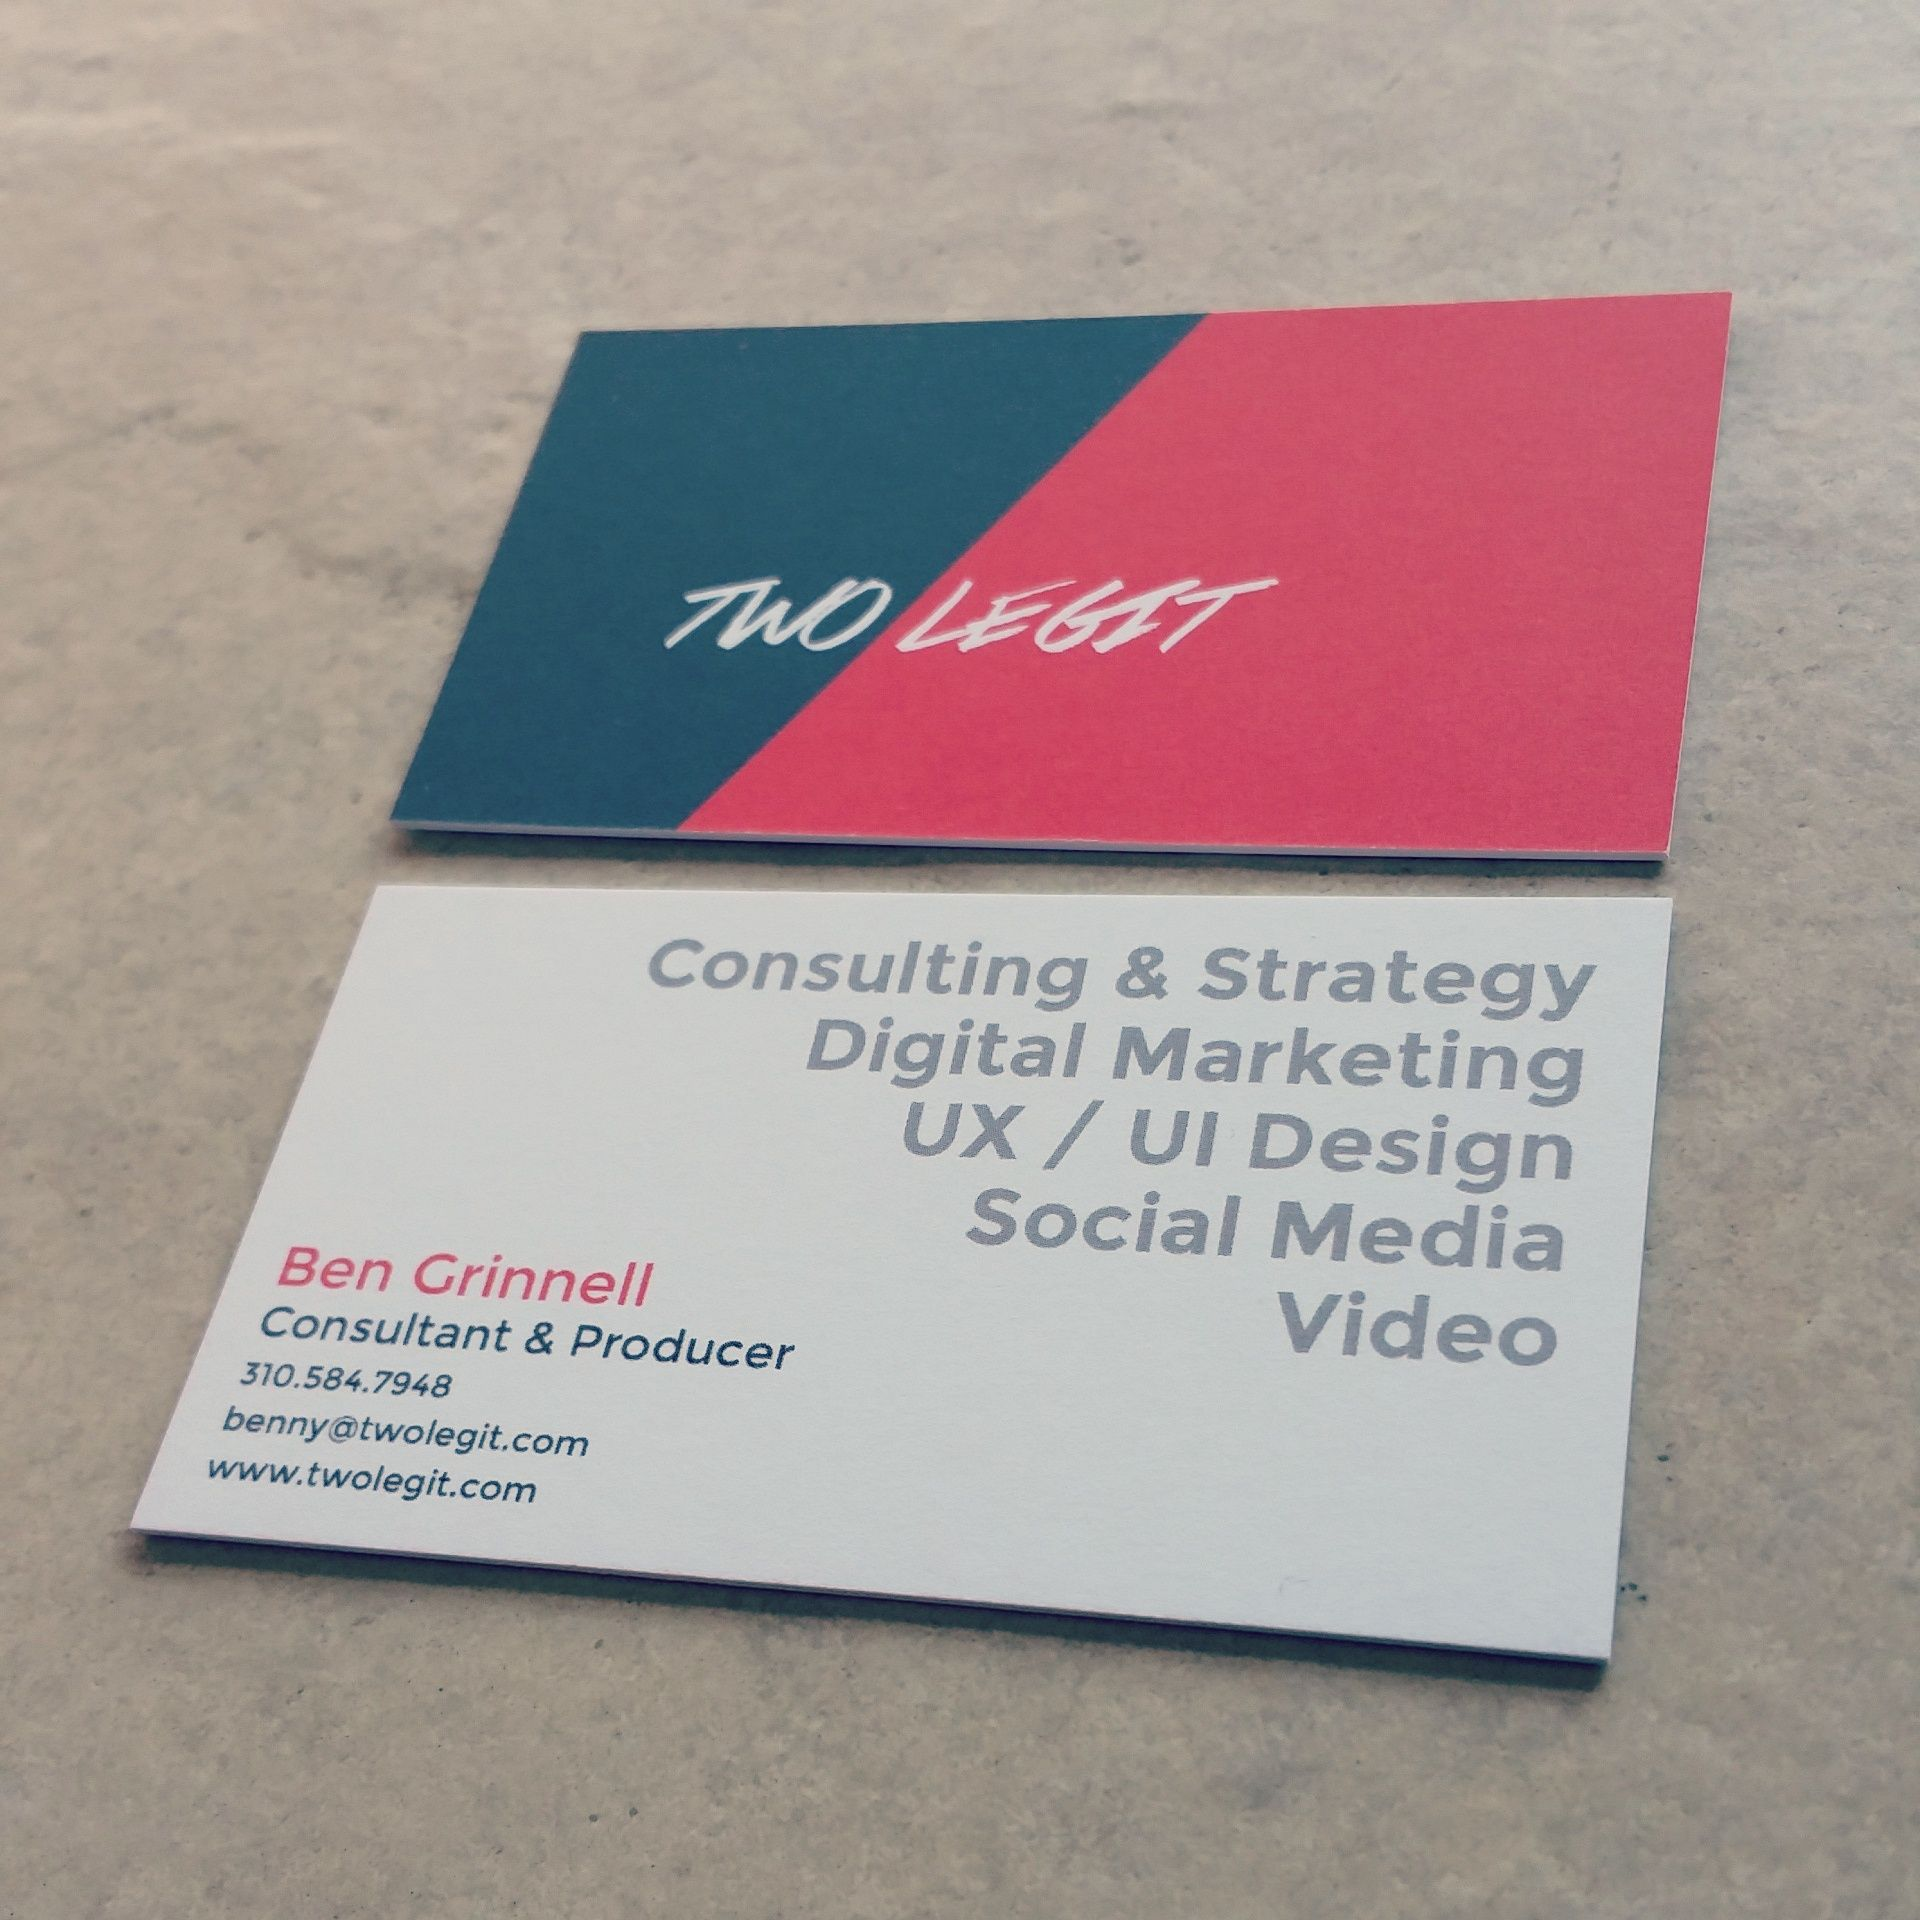 first round of our new business card pretty simple design